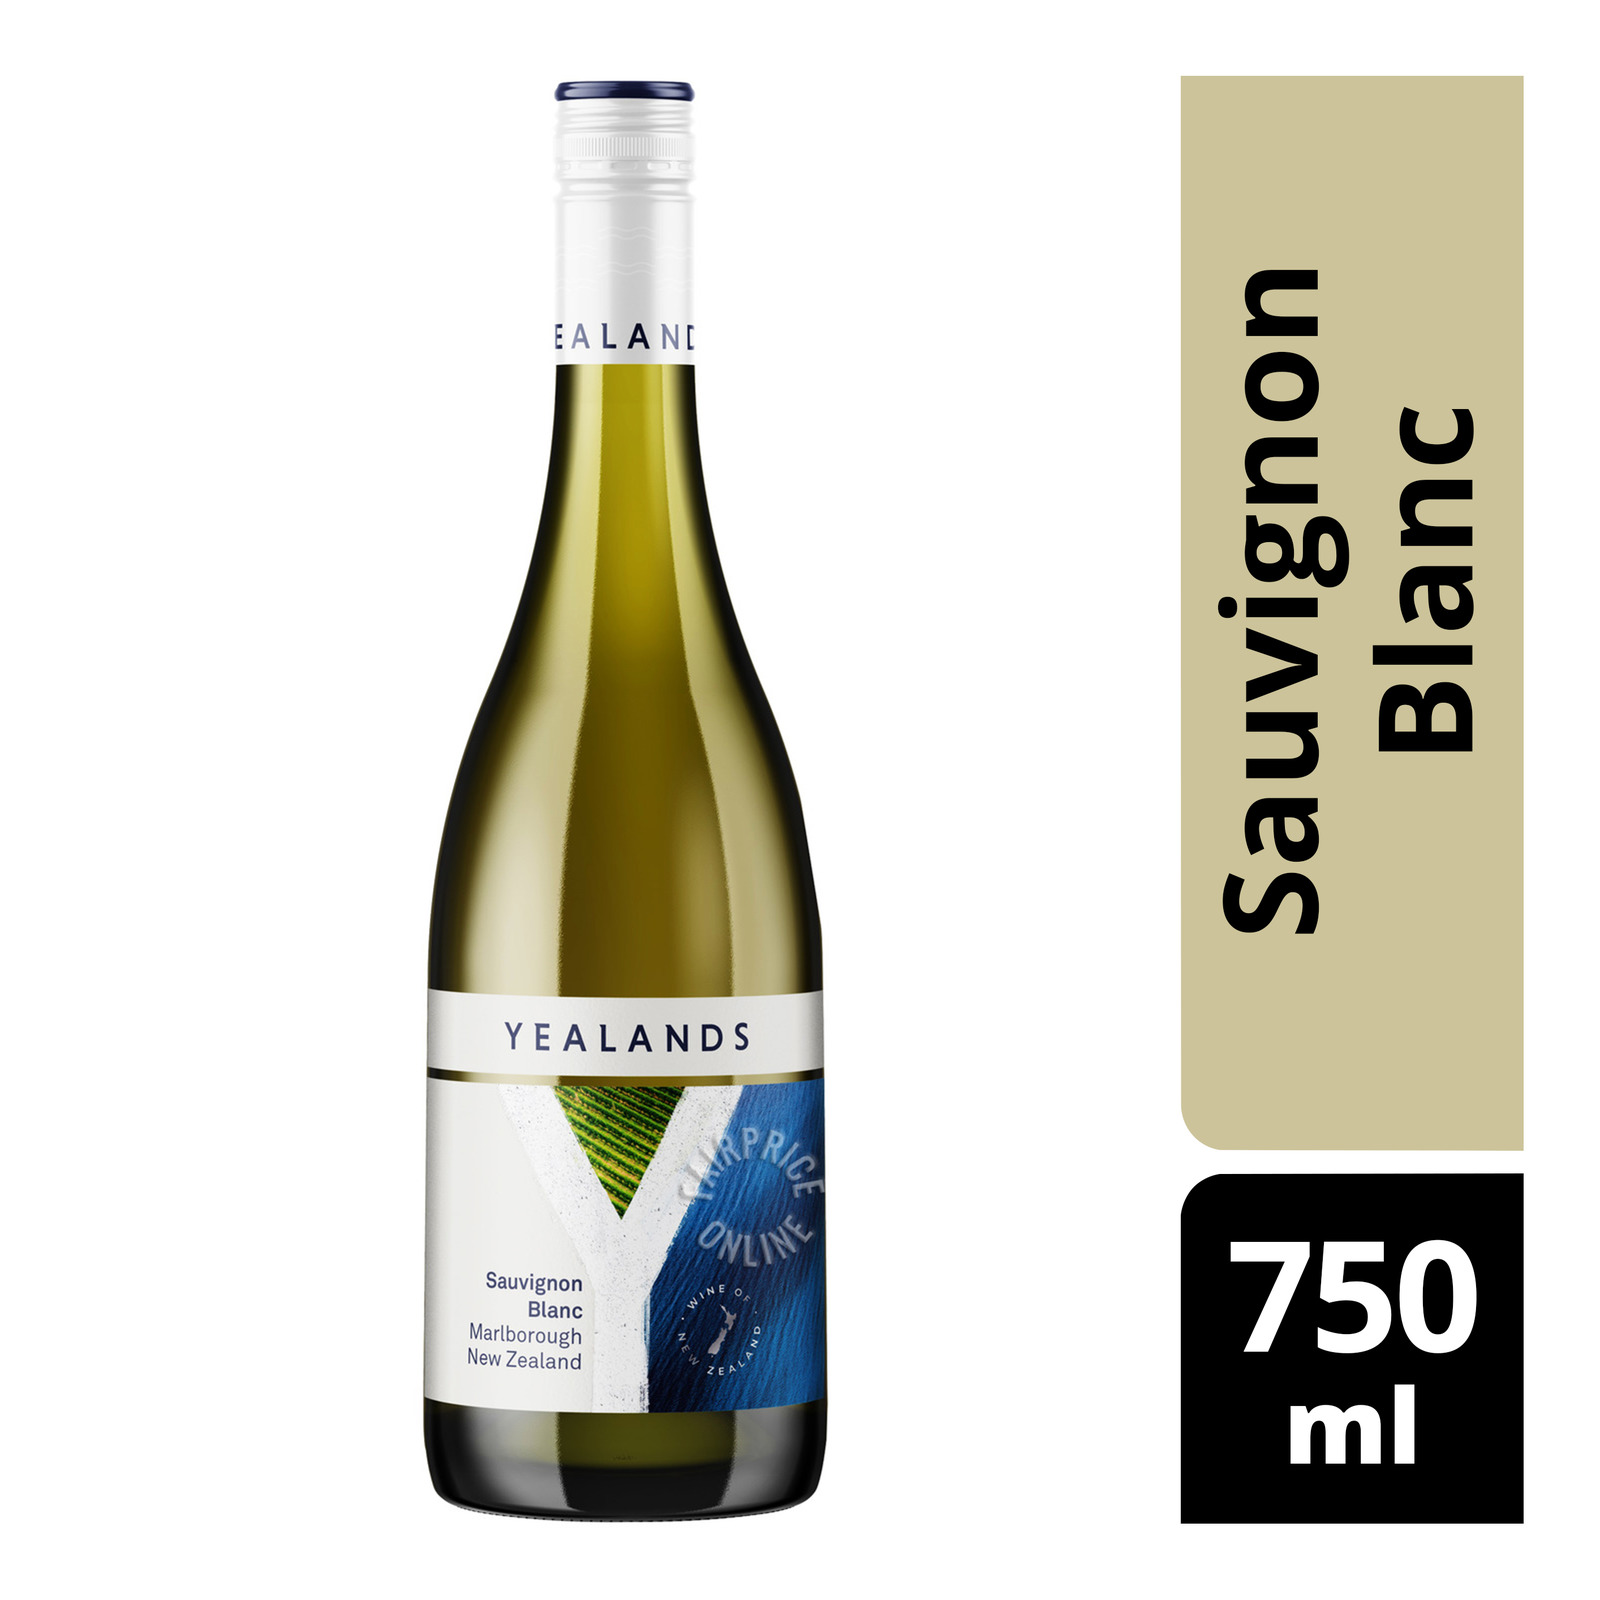 Yealands White Wine - Sauvignon Blanc